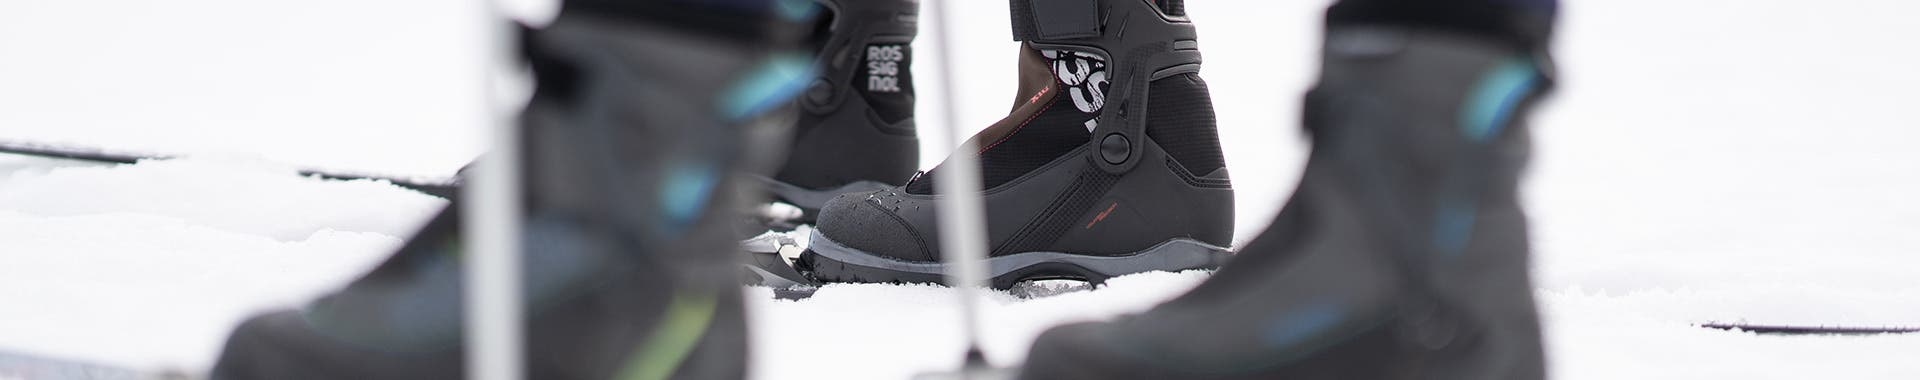 Backcountry ski boots